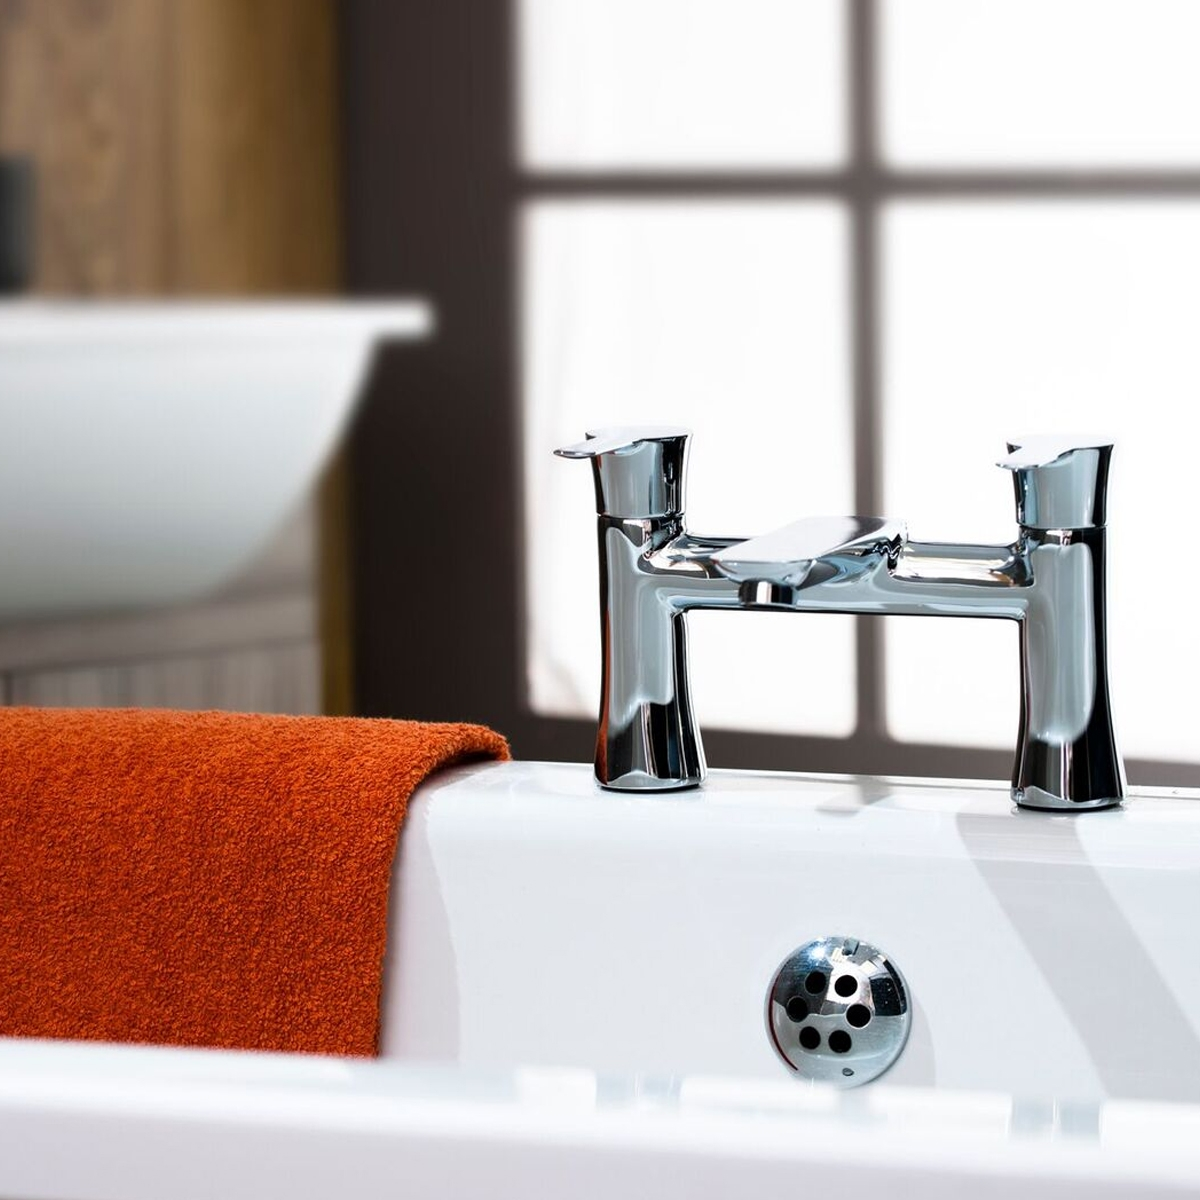 Cali Pedras Bath Filler Tap - Deck Mounted - Chrome